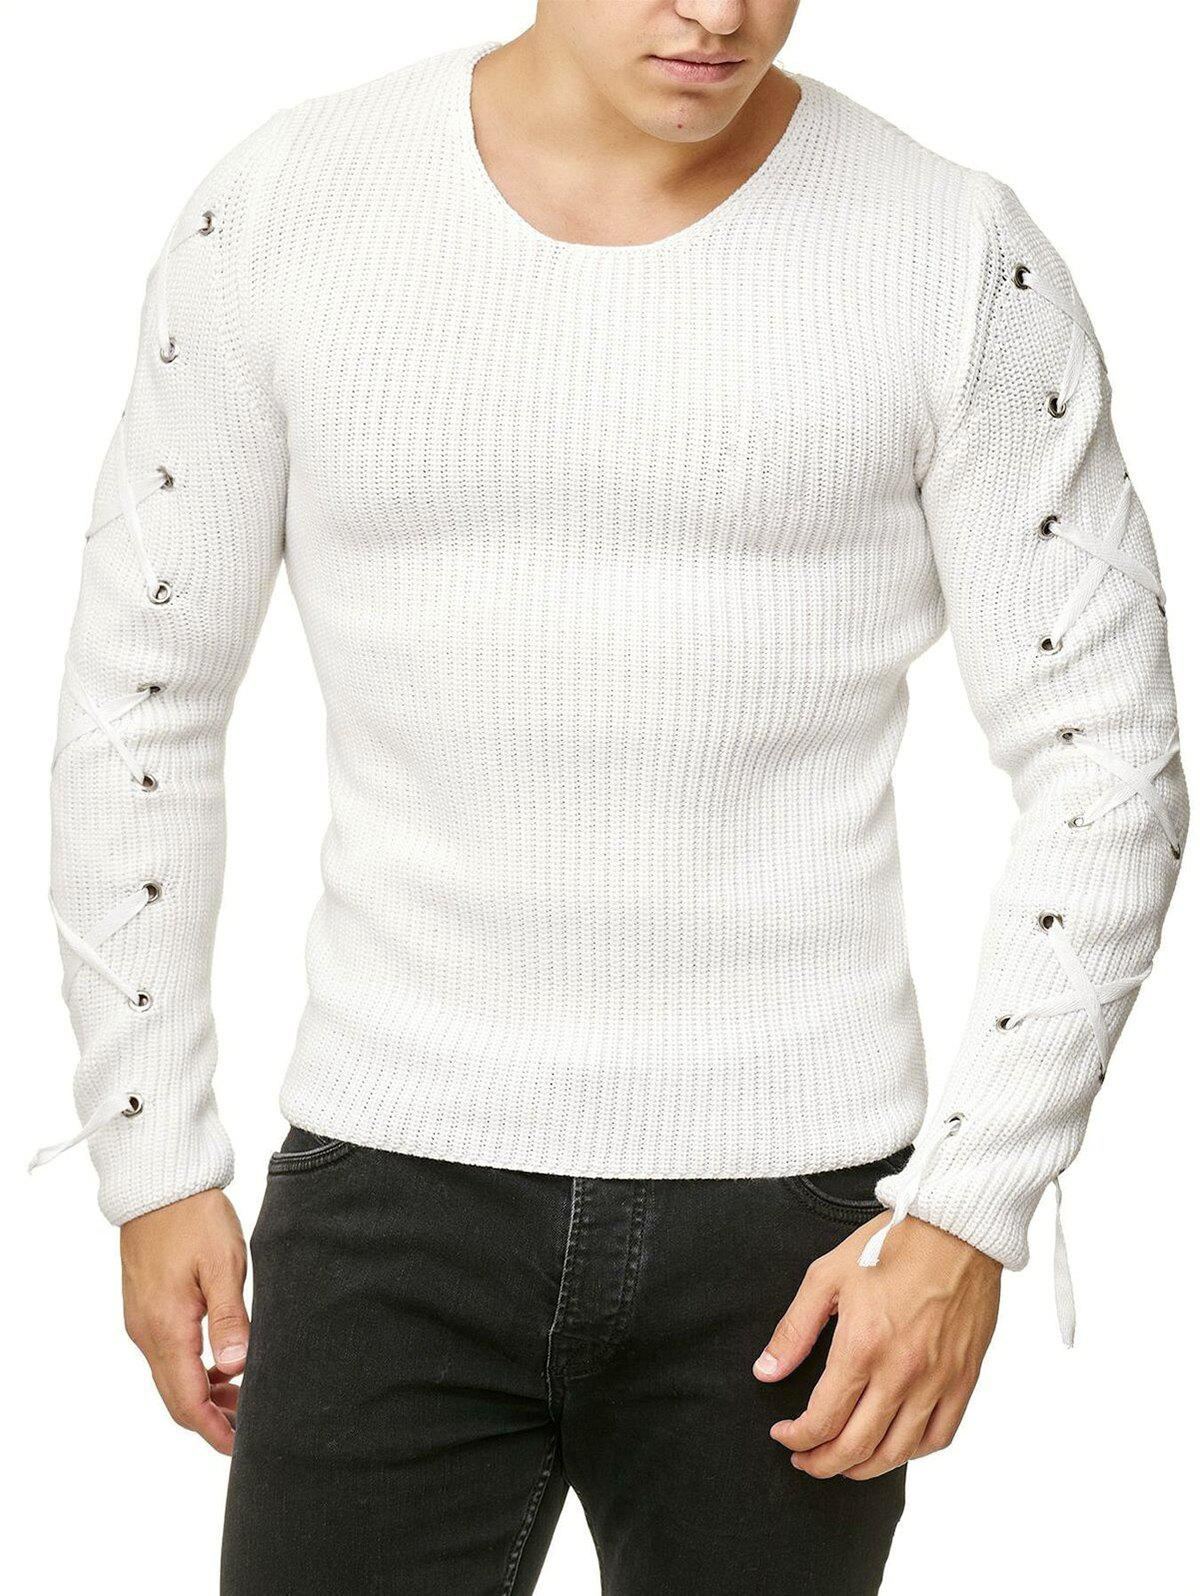 Lace Up Solid Color Pullover Sweater - WHITE L